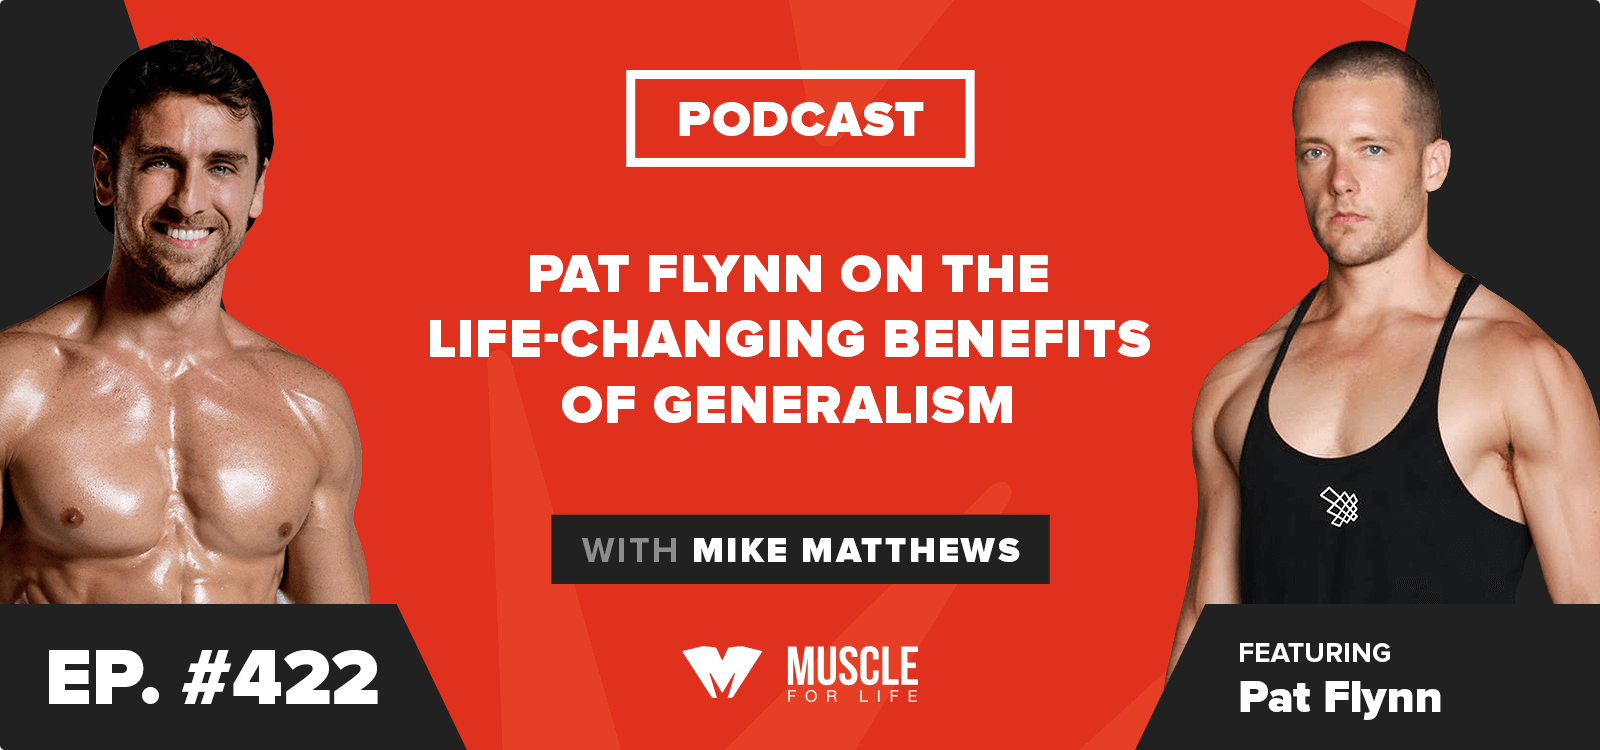 Pat-Flynn-on-the-Life-Changing-Benefits-of-Generalism_blogpost_1600x750